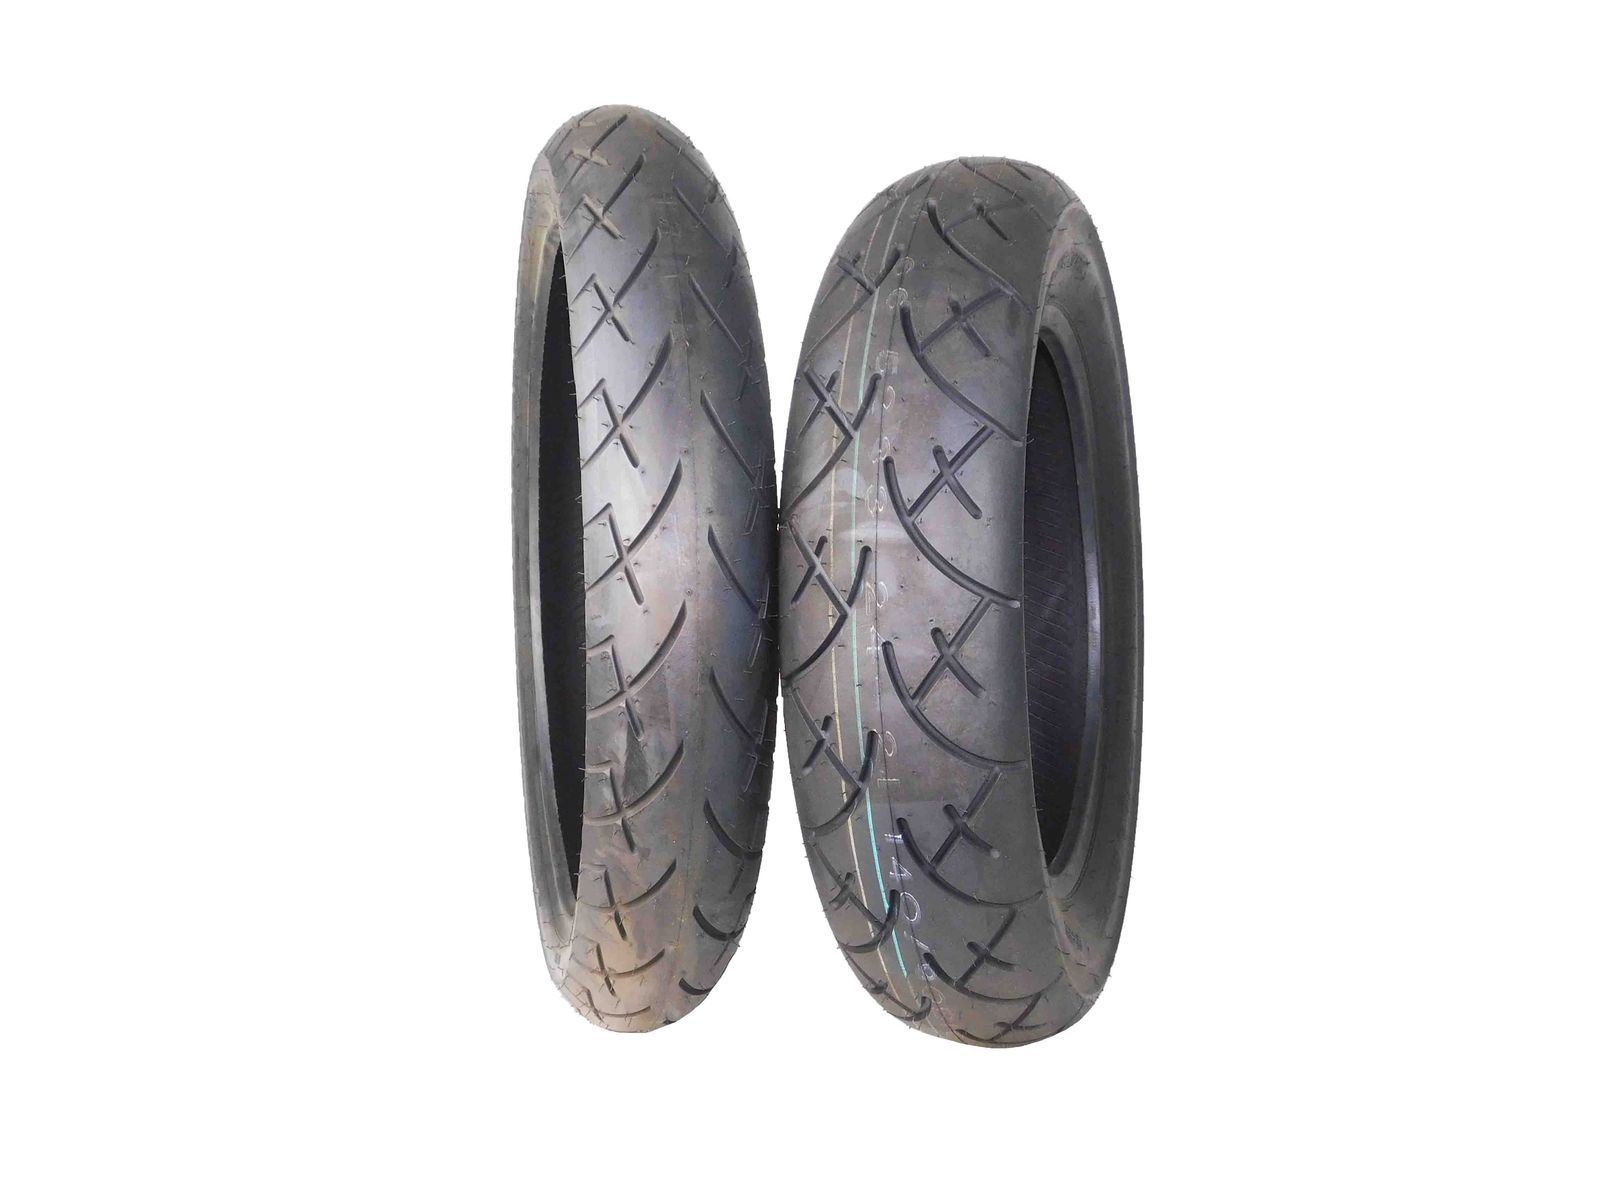 Full-Bore-120-70-21-Front-140-90-16-Tour-King-Cruiser-Motorcycle-Tires-image-1